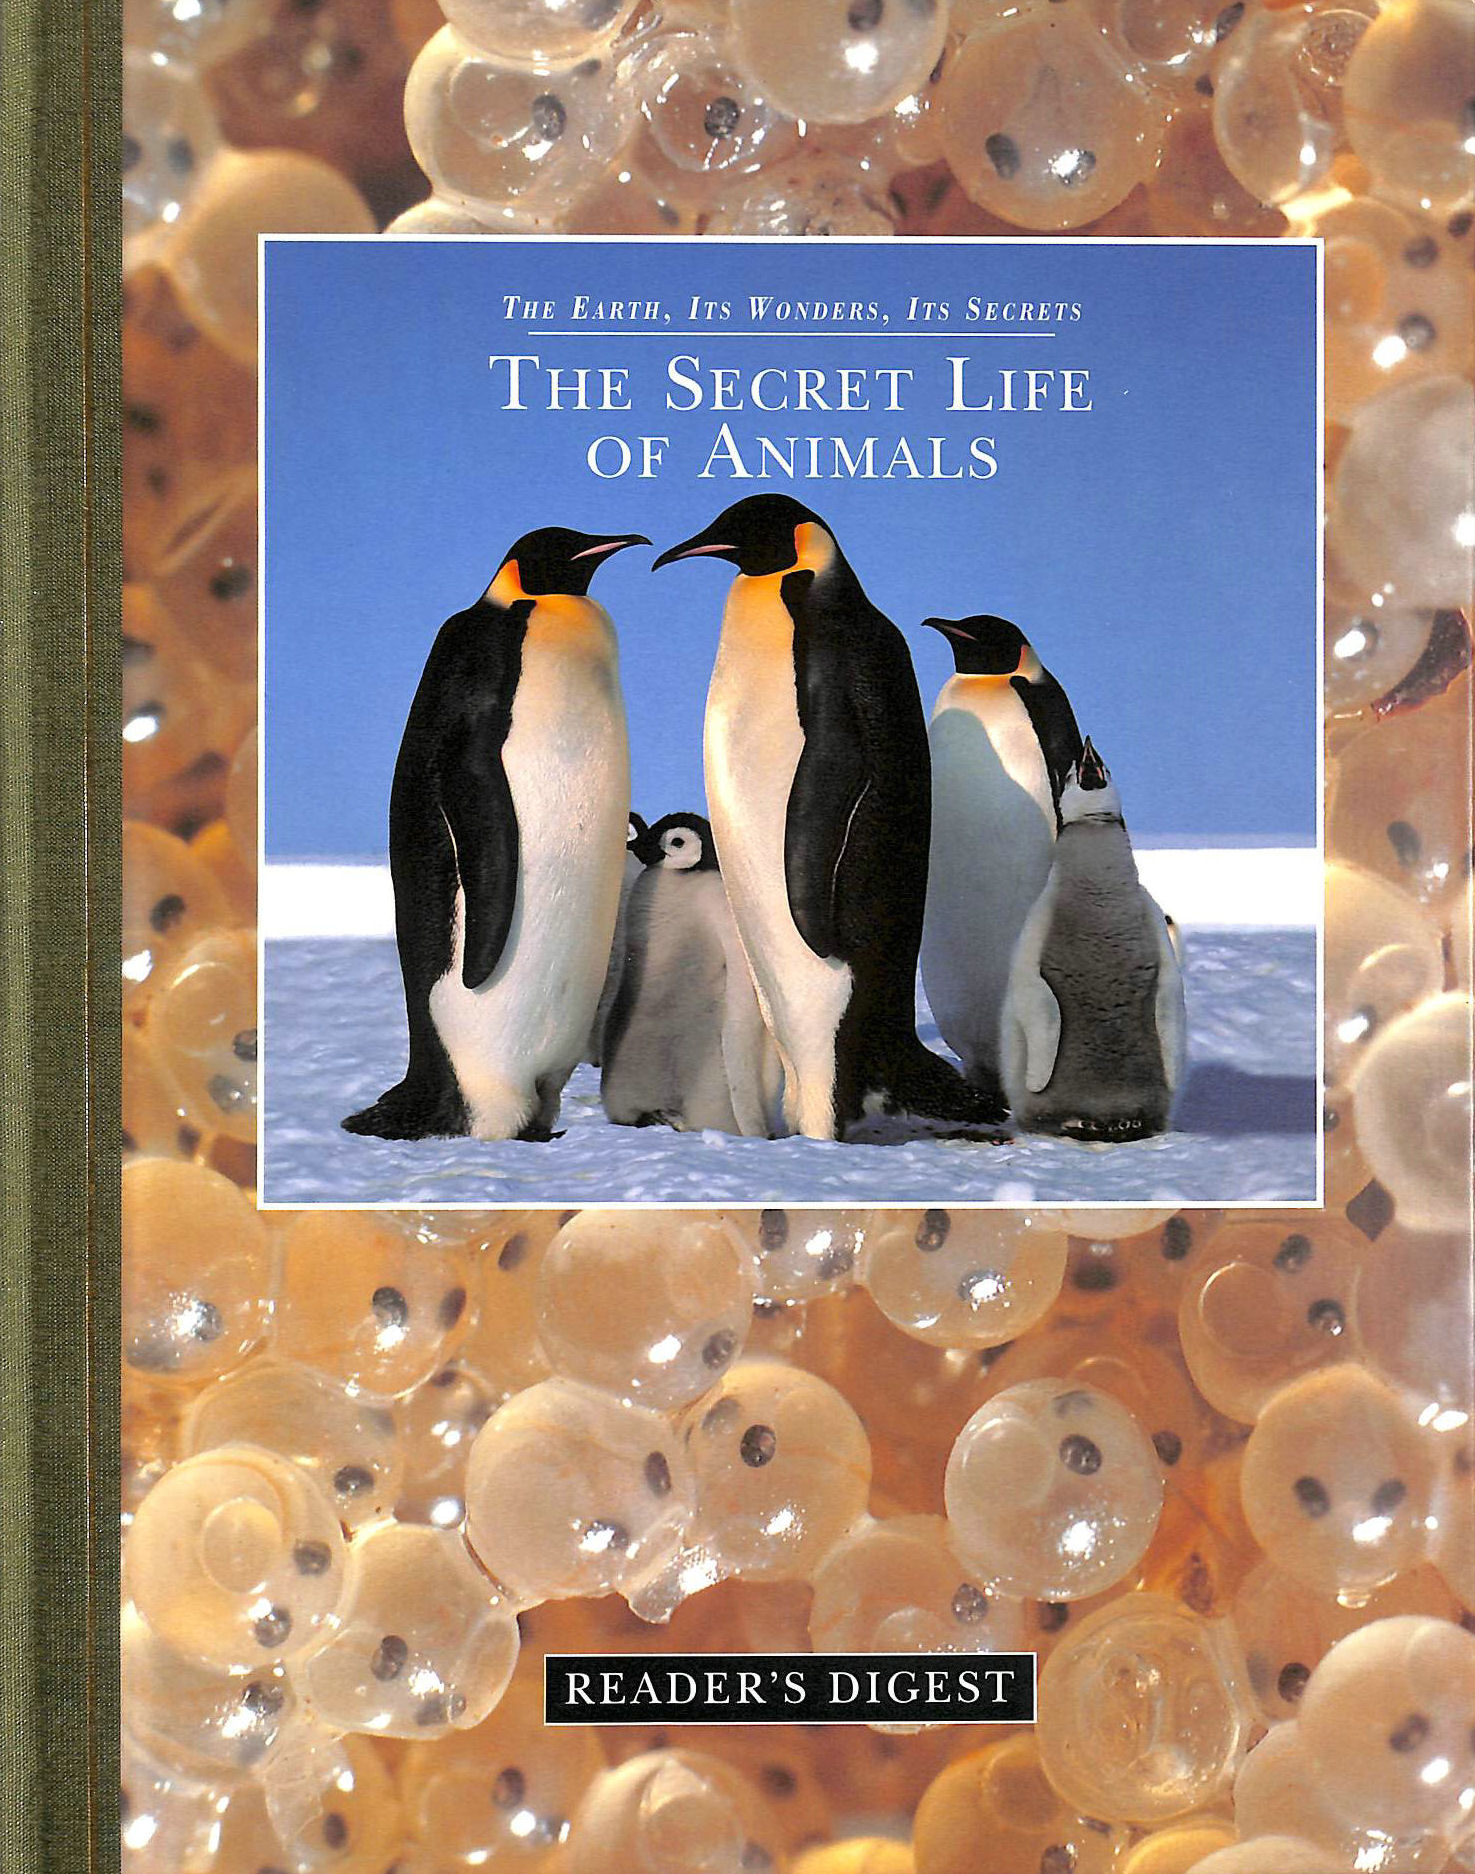 Image for The secret life of animals (The earth, its wonders, its secrets)